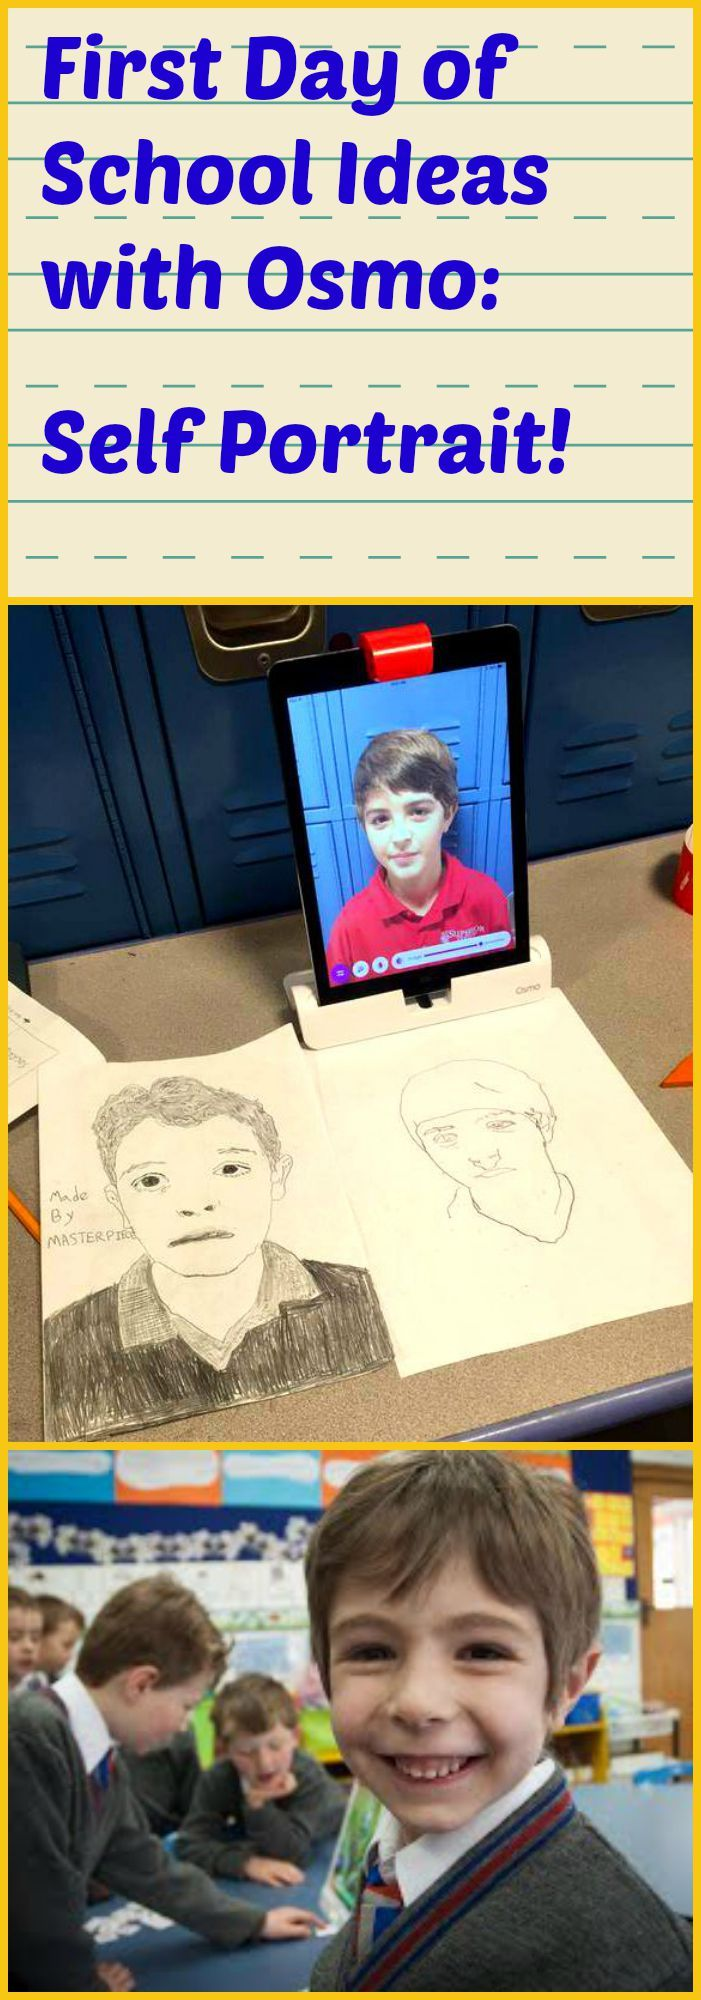 Here is a great first day of school idea using Osmo!    In this workshop, students get to experience taking a self-photo and sketch out their own self portrait. 1. Students will start by taking a selfie with the iPad. 2. Teacher demonstrates choosing an image to draw from the camera roll and changing the visible lines.  3. Students begin tracing their photo and drawing a self portrait. For more ideas on how to revolutionize your classroom with Osmo, visit…